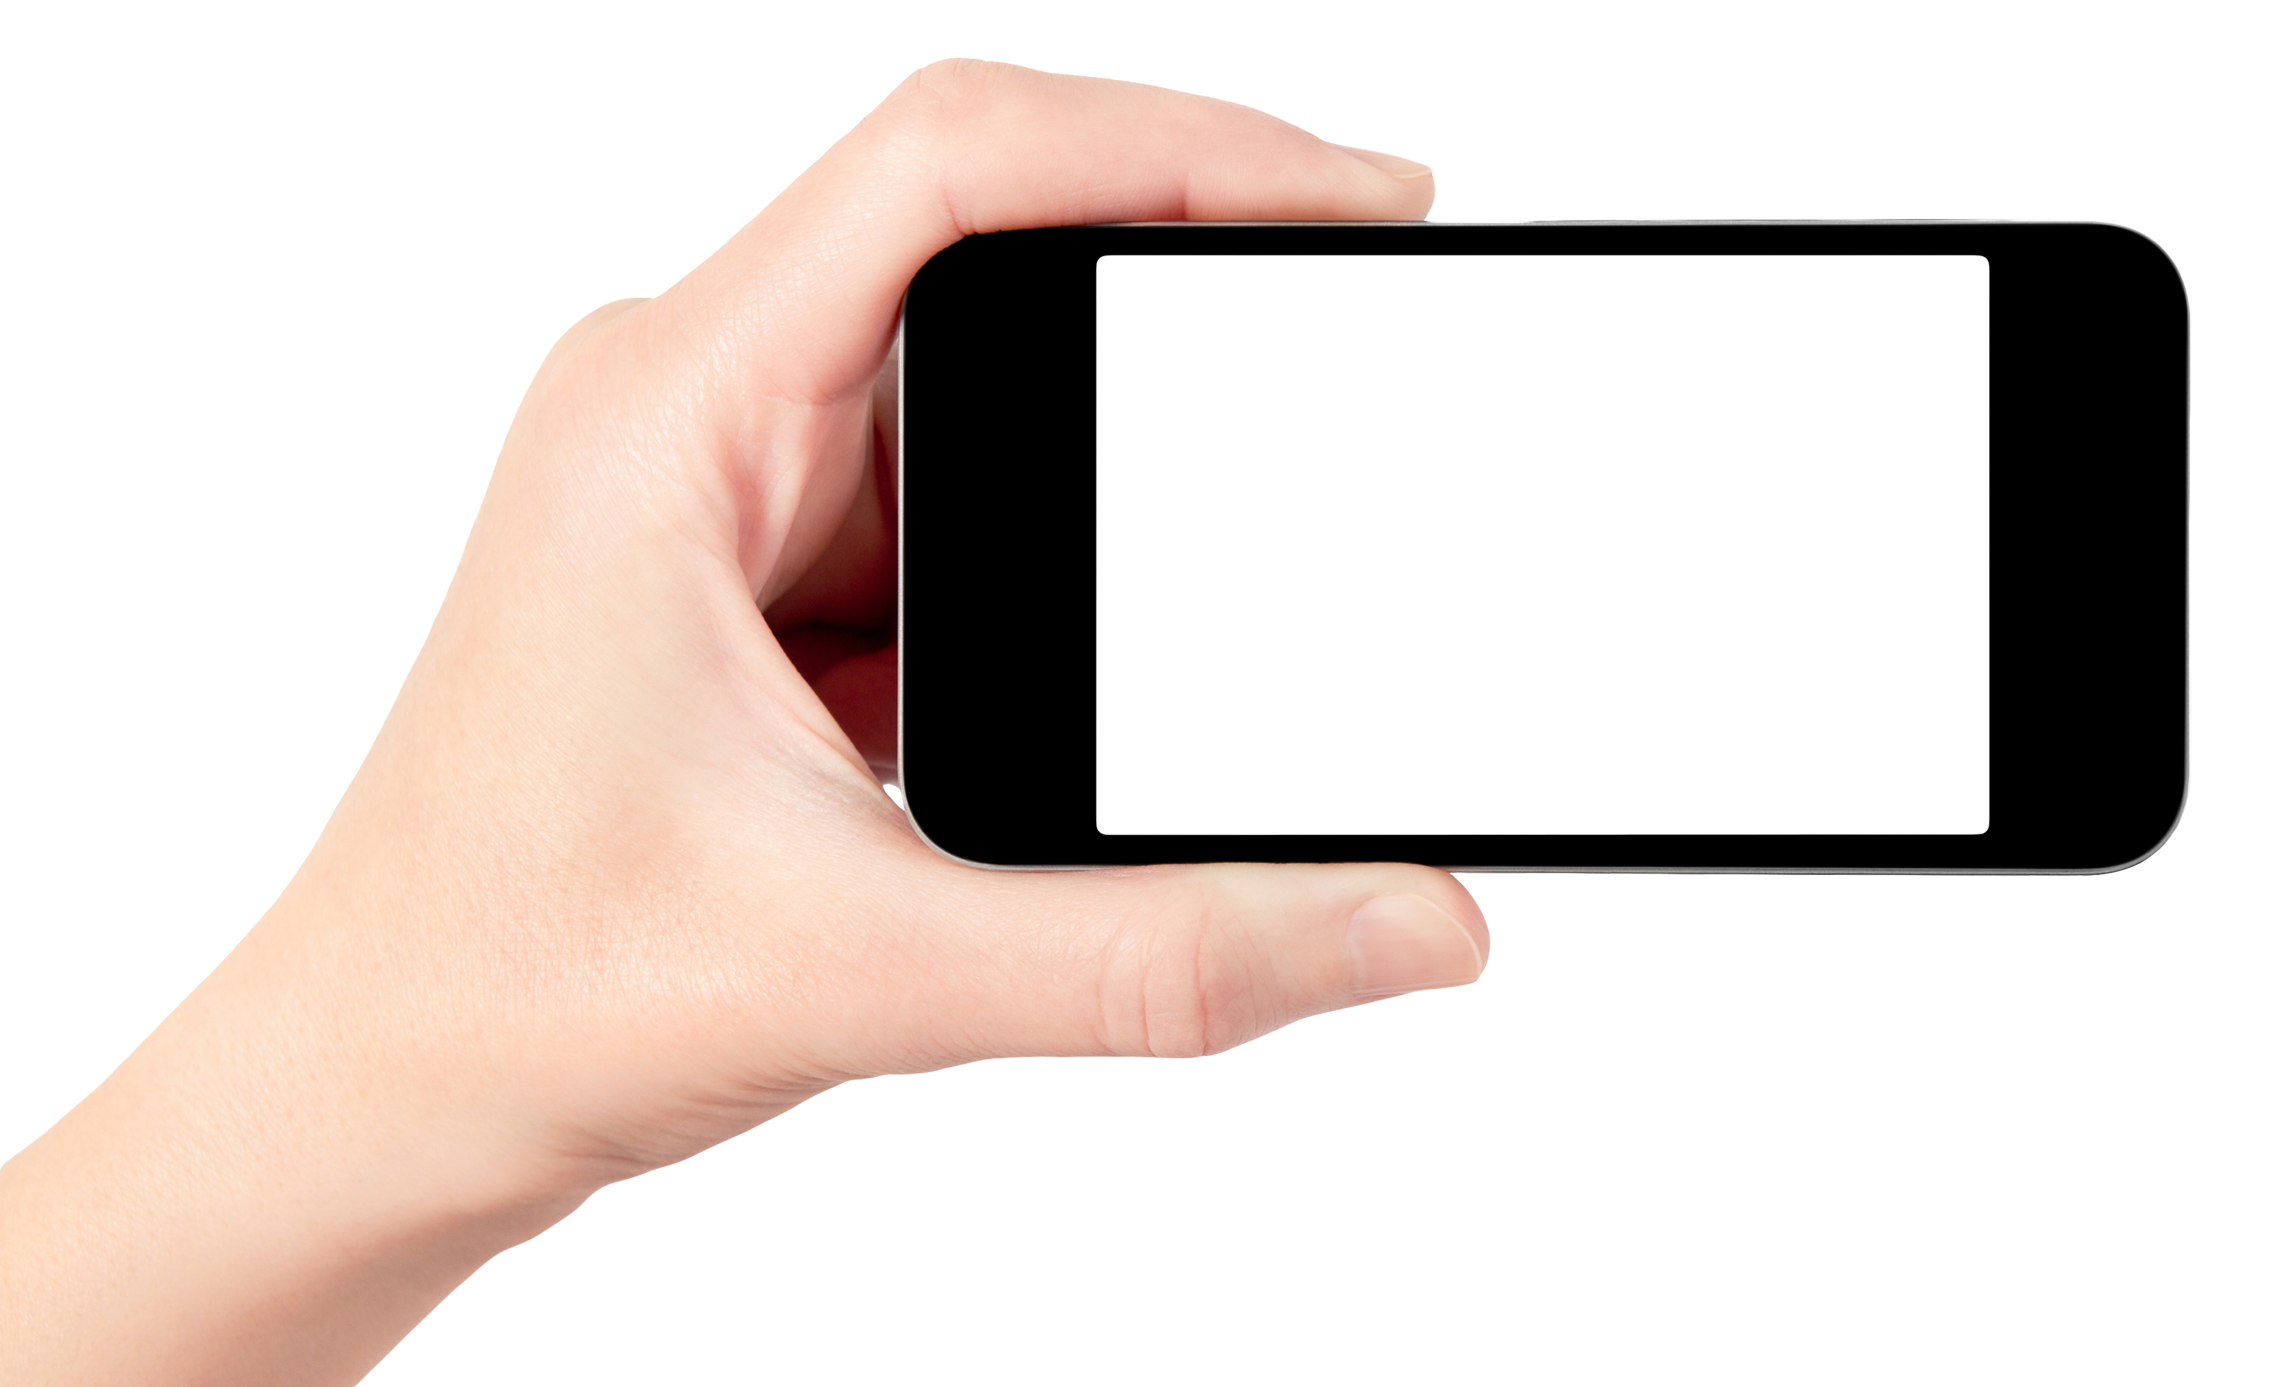 Cellphone in hand png. Holding smartphone mobile image